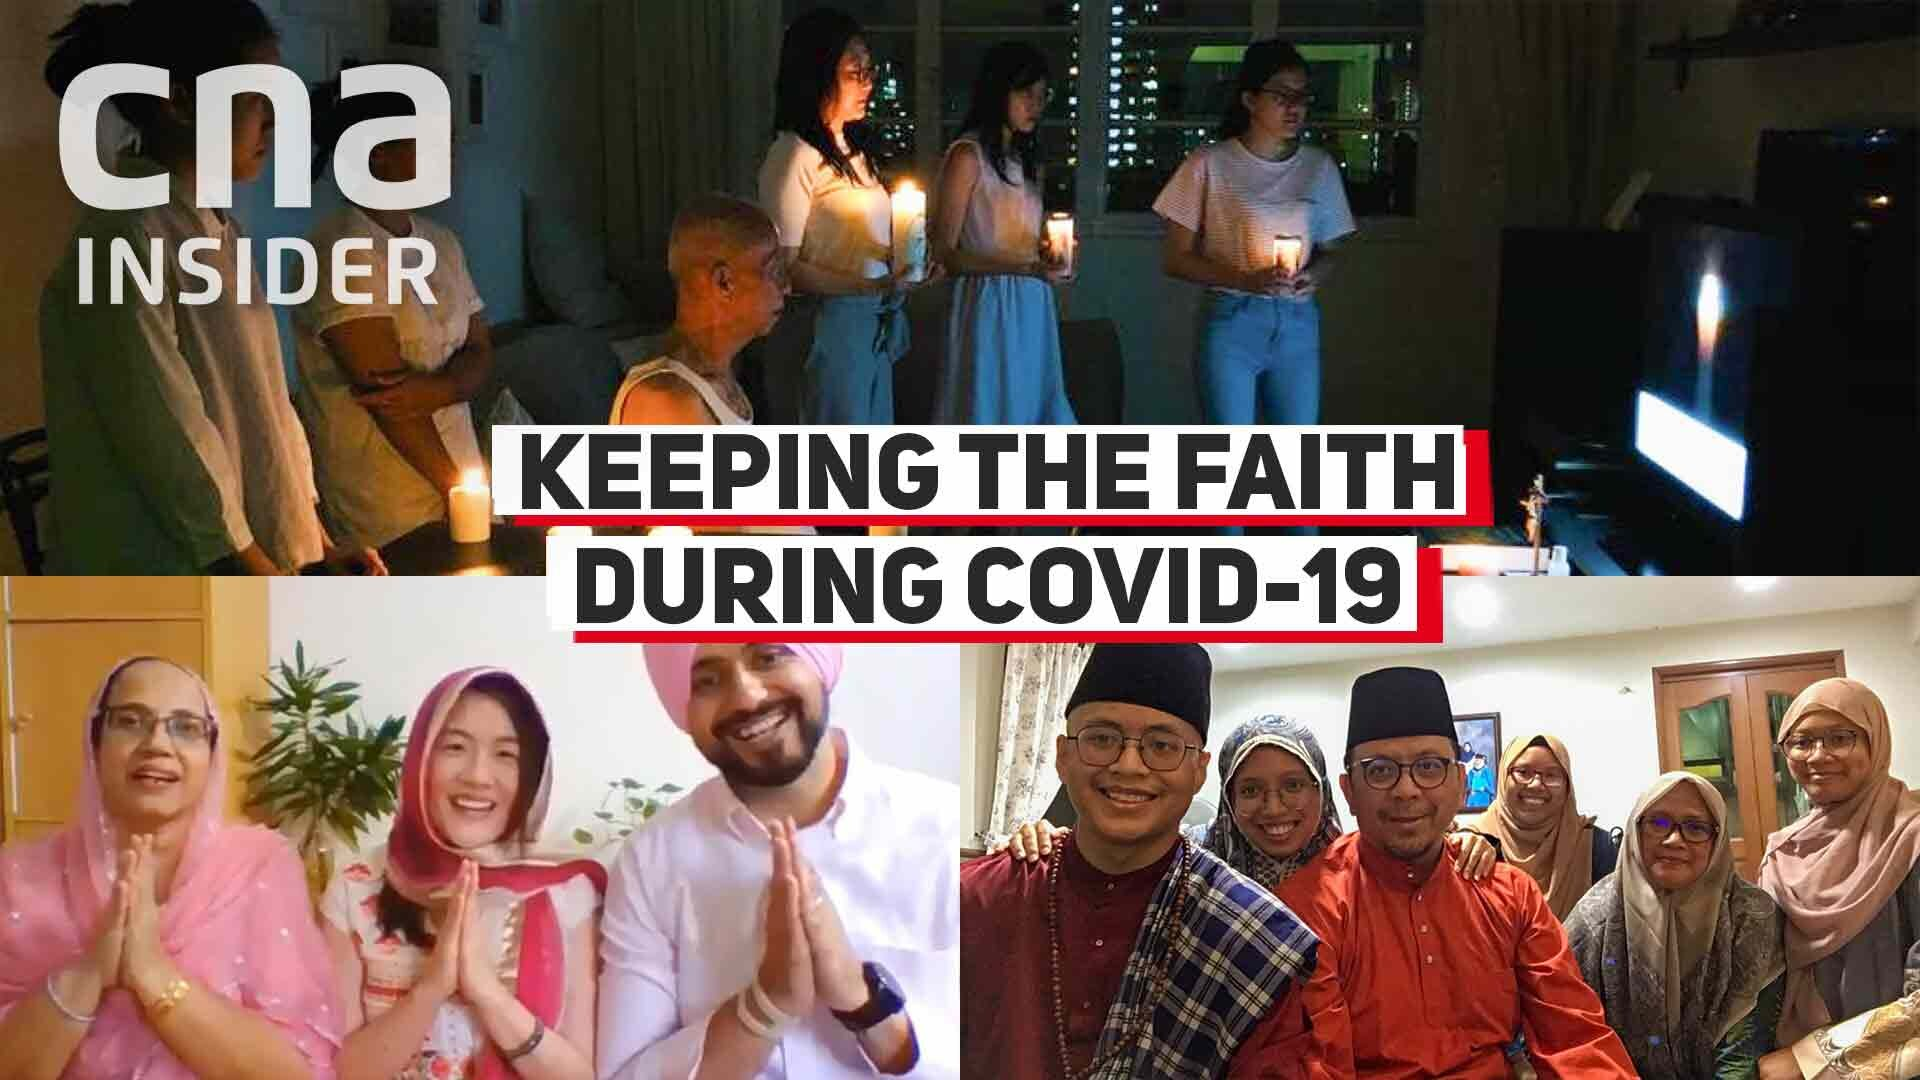 Keeping the faith during COVID-19